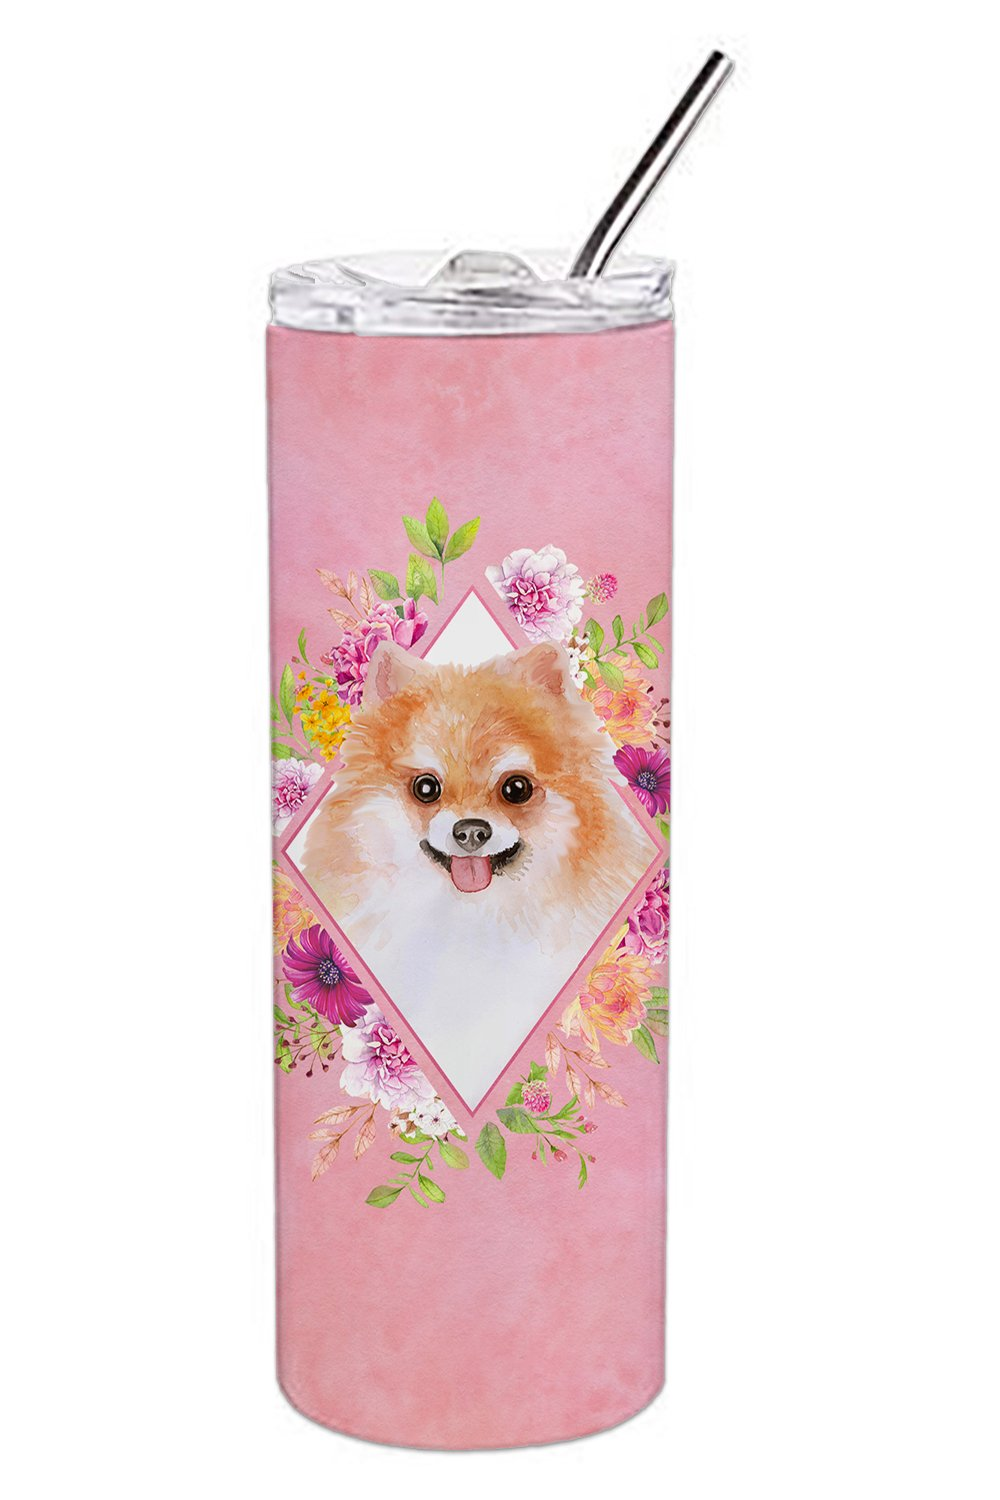 Pomeranian #1 Pink Flowers Double Walled Stainless Steel 20 oz Skinny Tumbler CK4169TBL20 by Caroline's Treasures